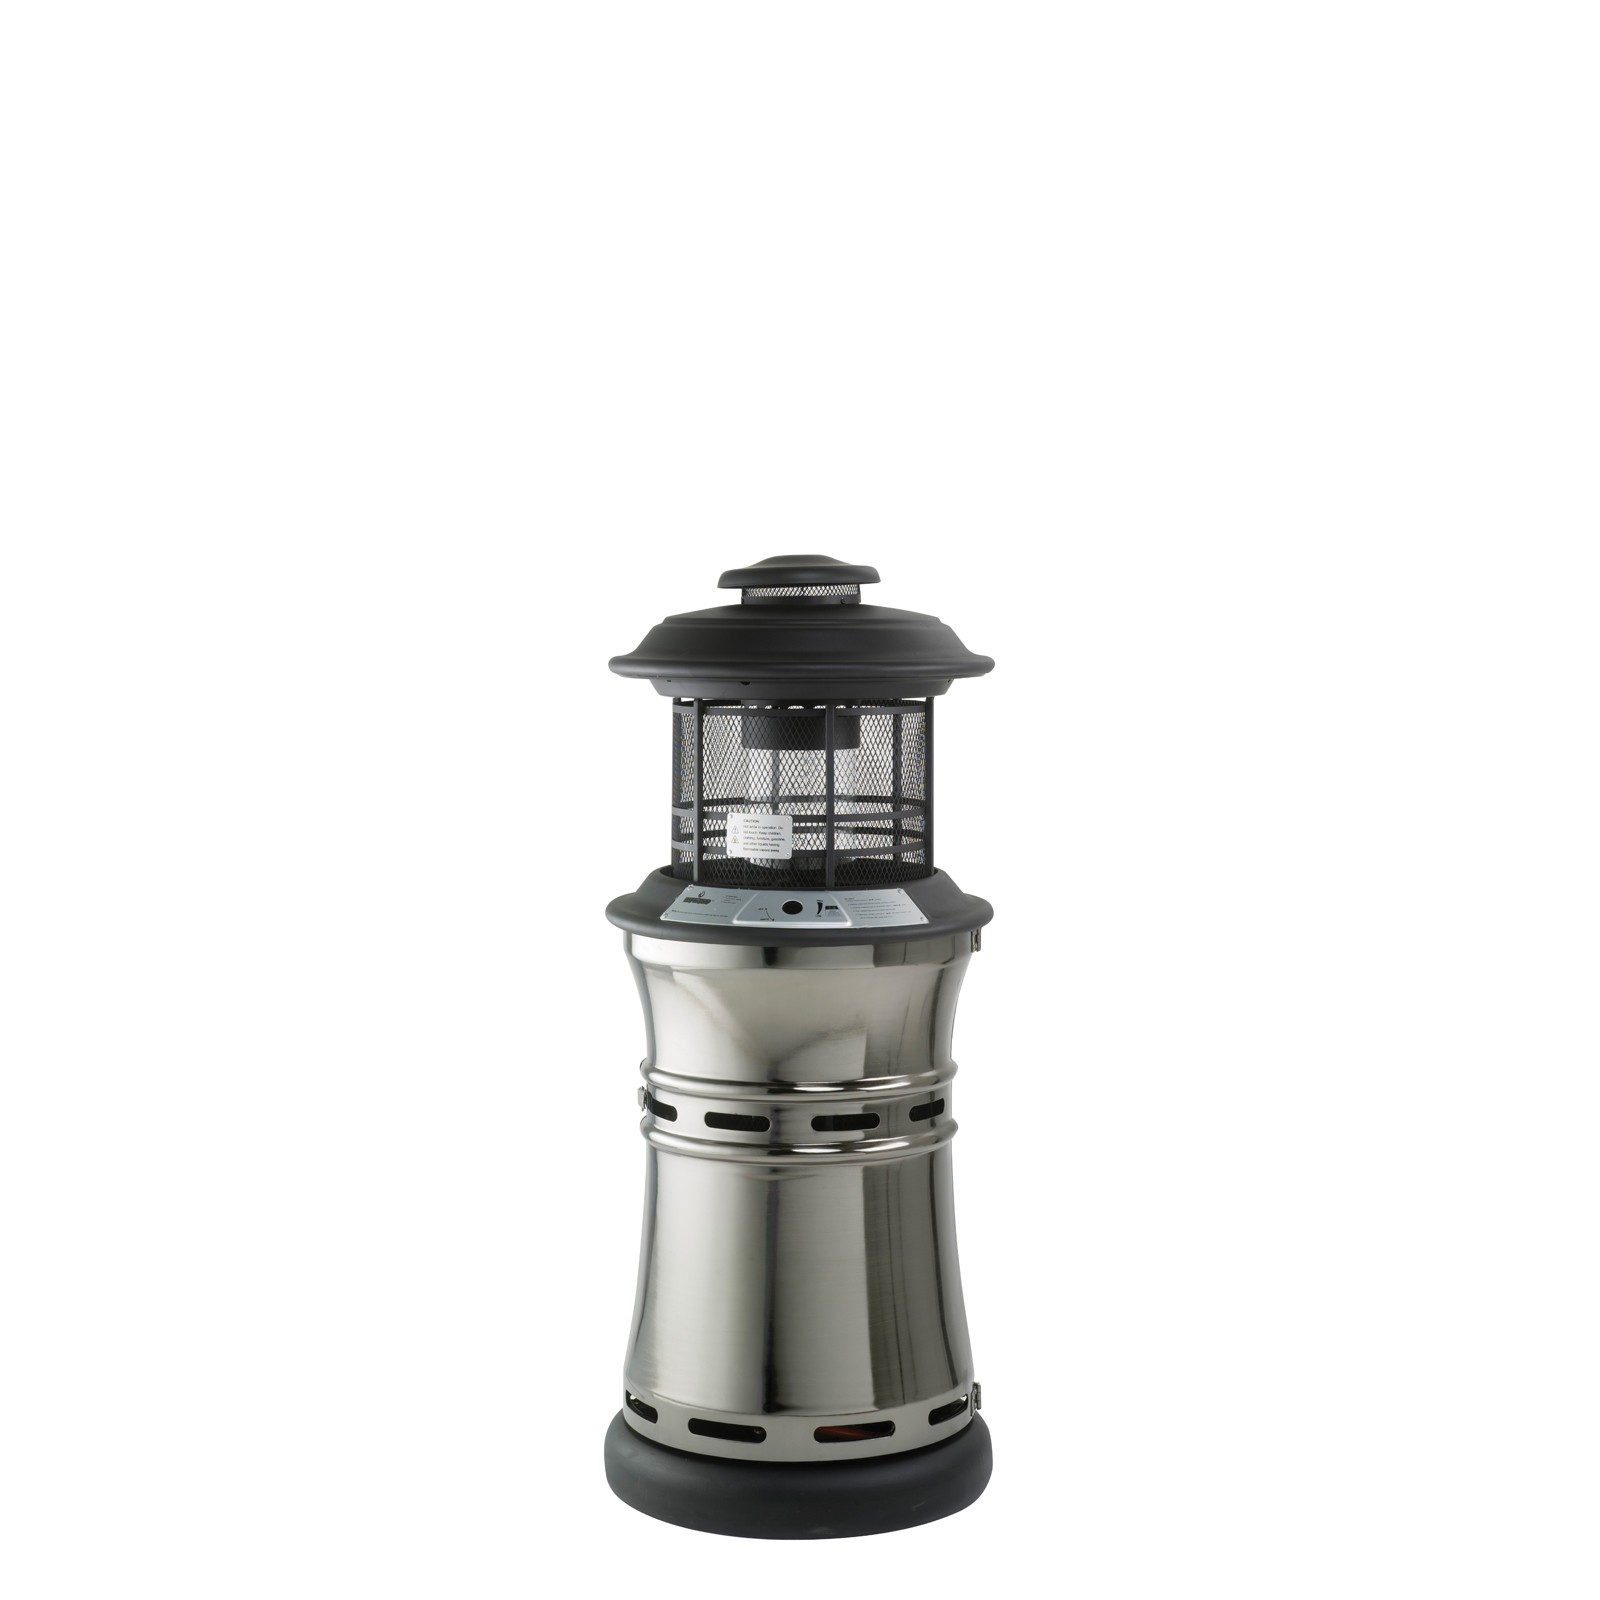 Lifestyle Santorini Gas Flame Patio Heater with regard to dimensions 1600 X 1600